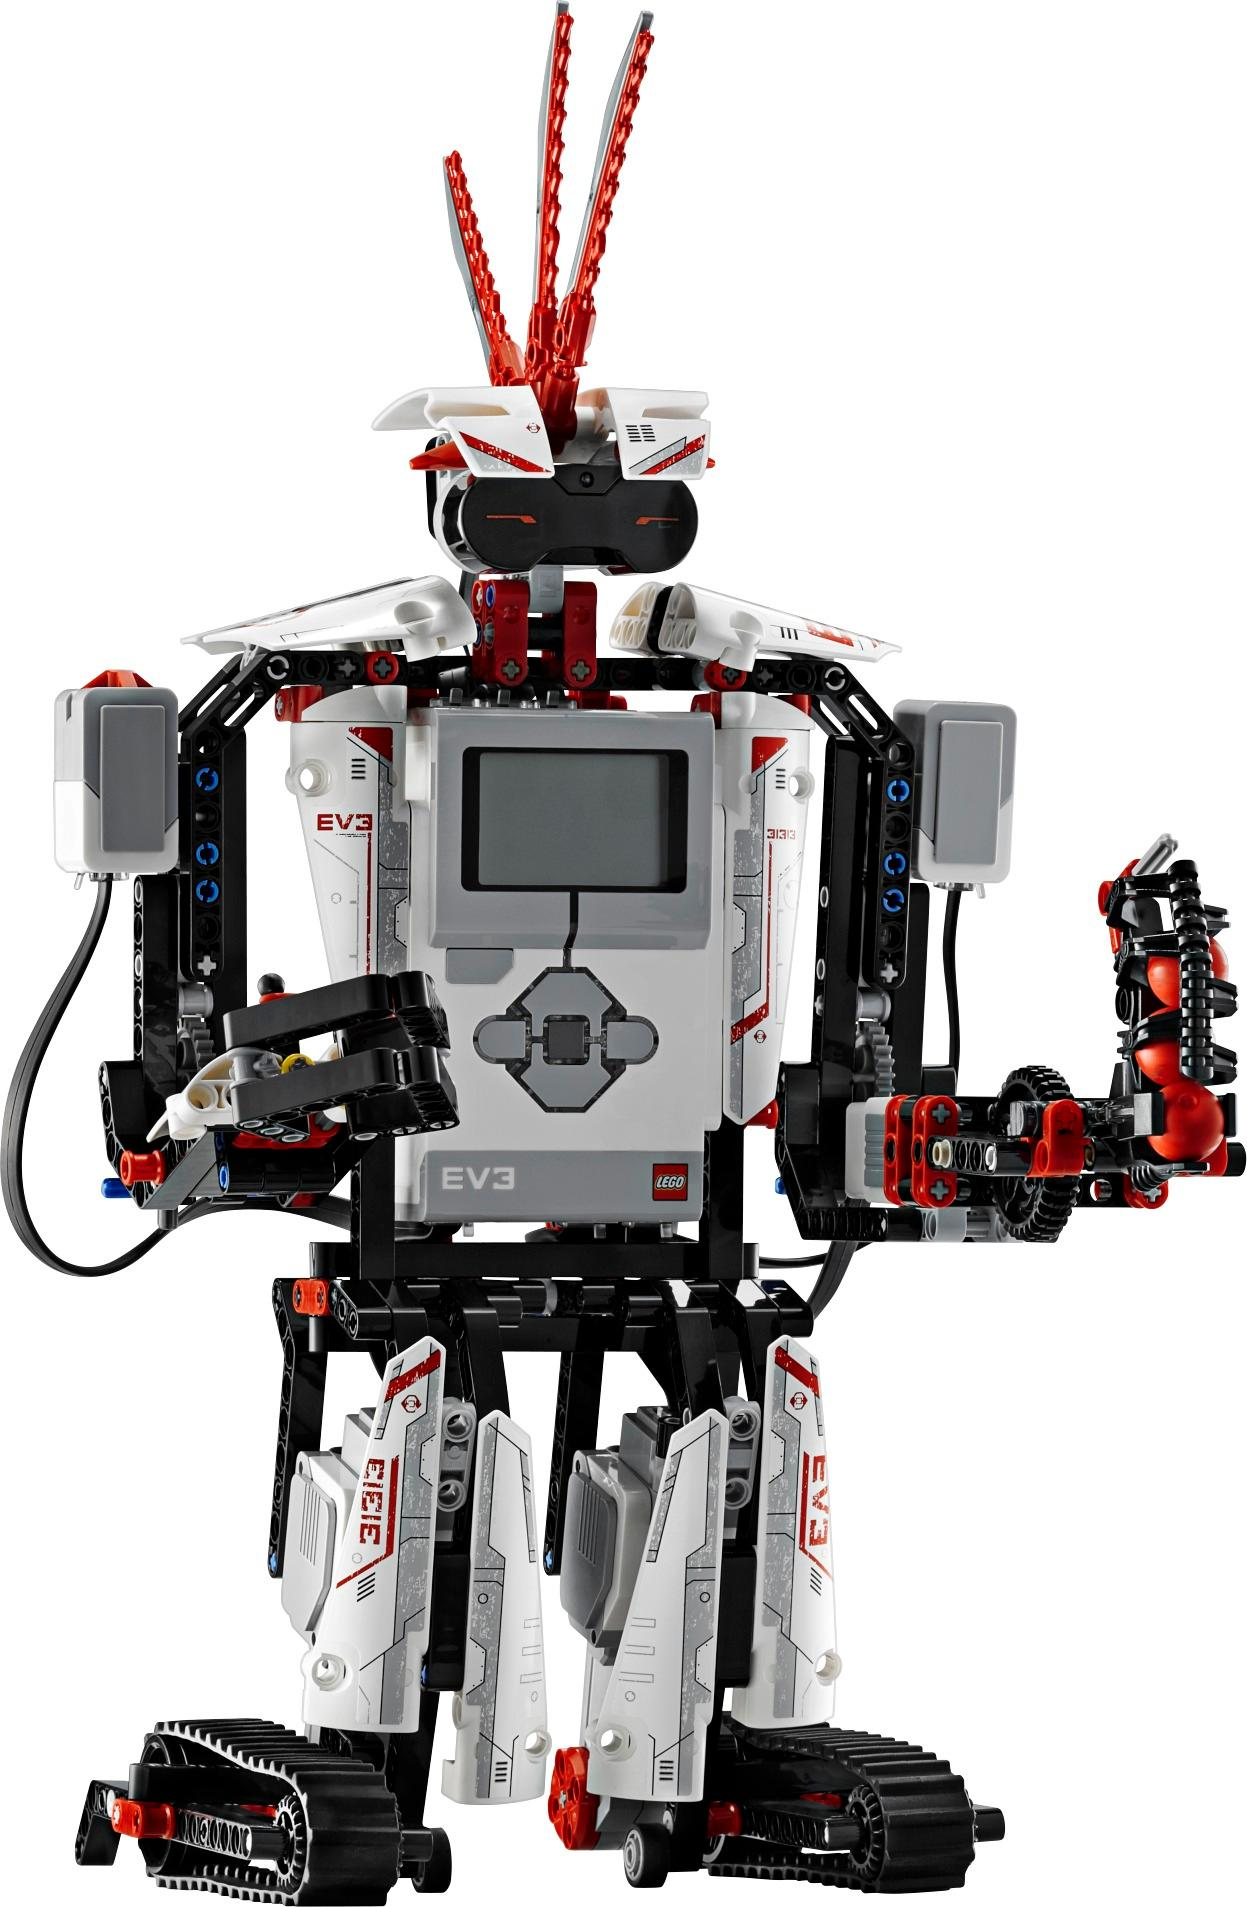 LEGO Mindstorms EV3 31313 6029291 Best Buy